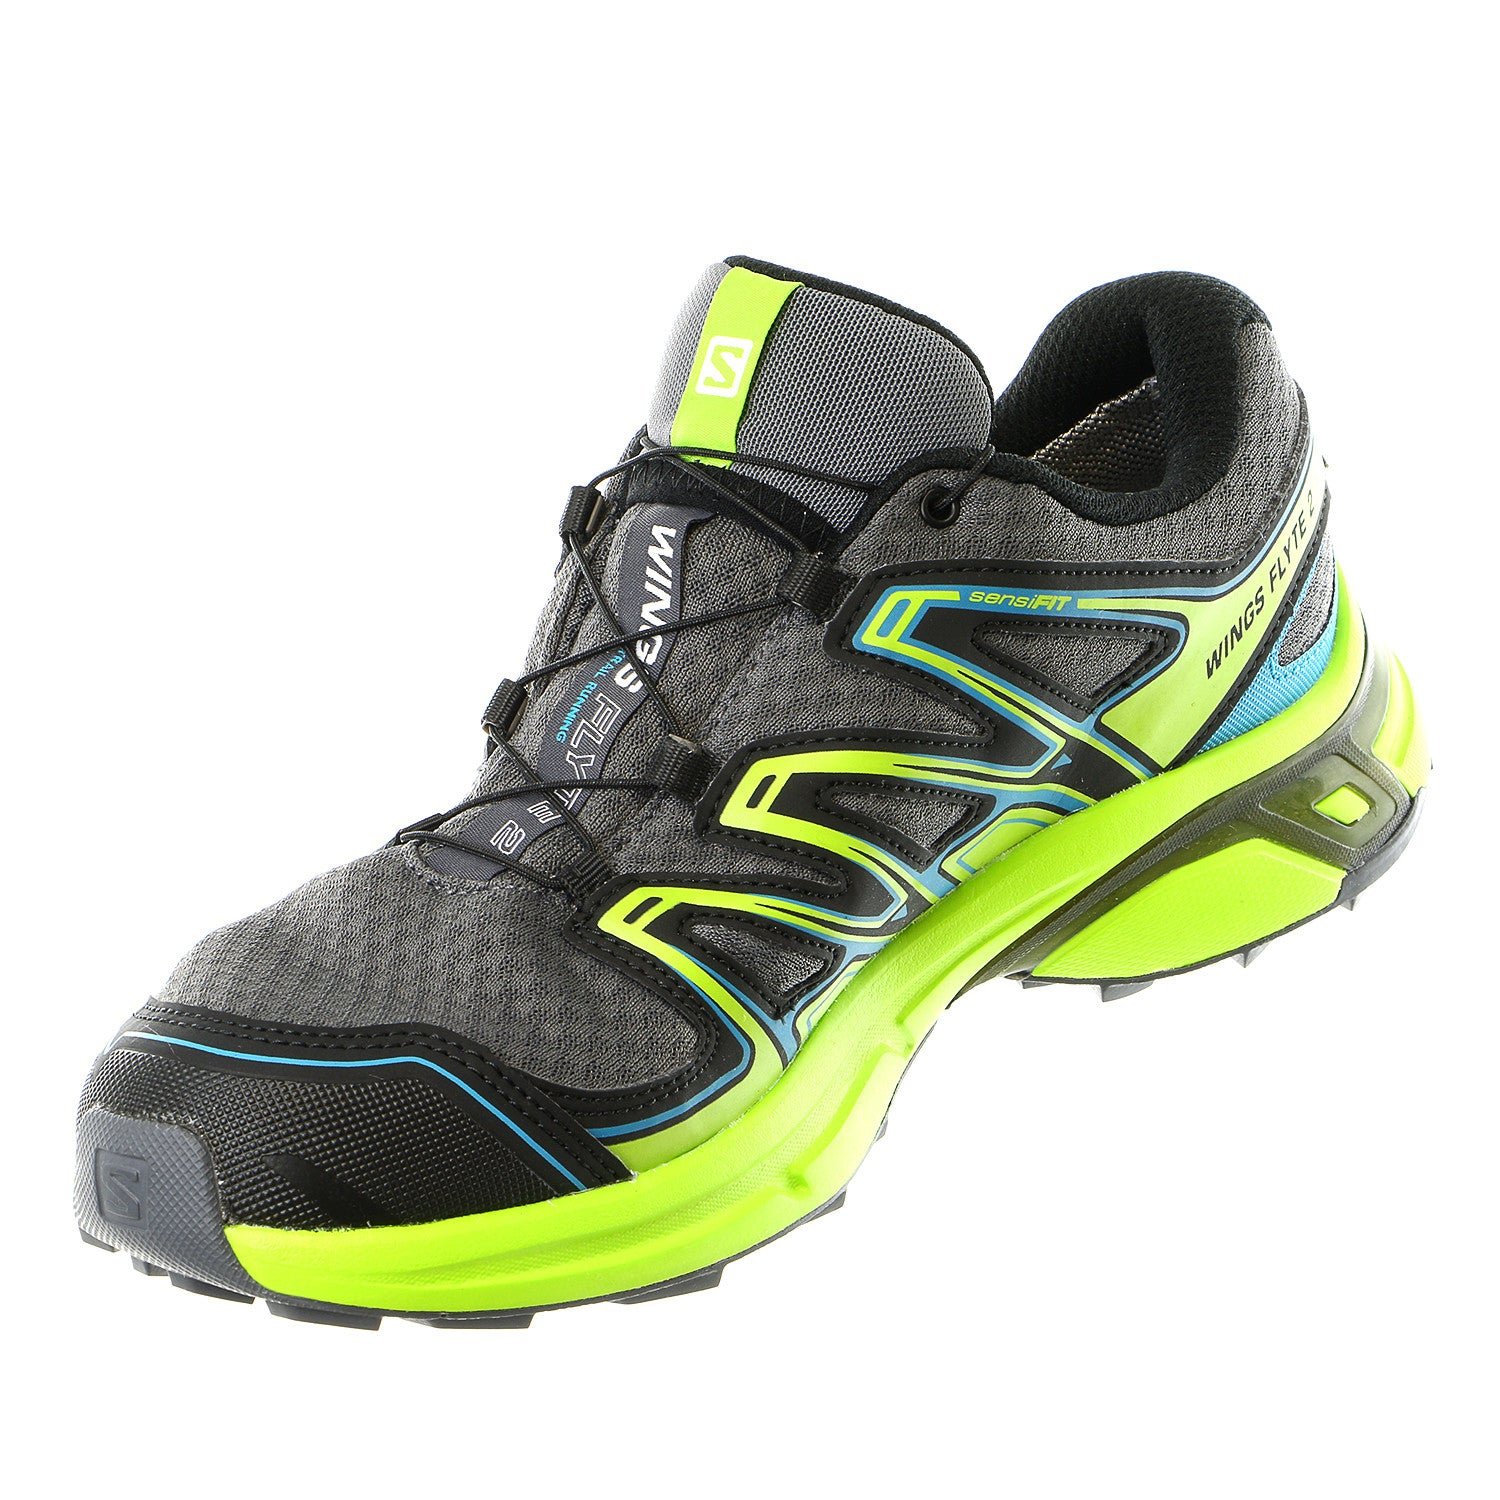 detailed look 362a9 a1377 Salomon Wings Flyte 2 Gtx Trail Runner - Men's